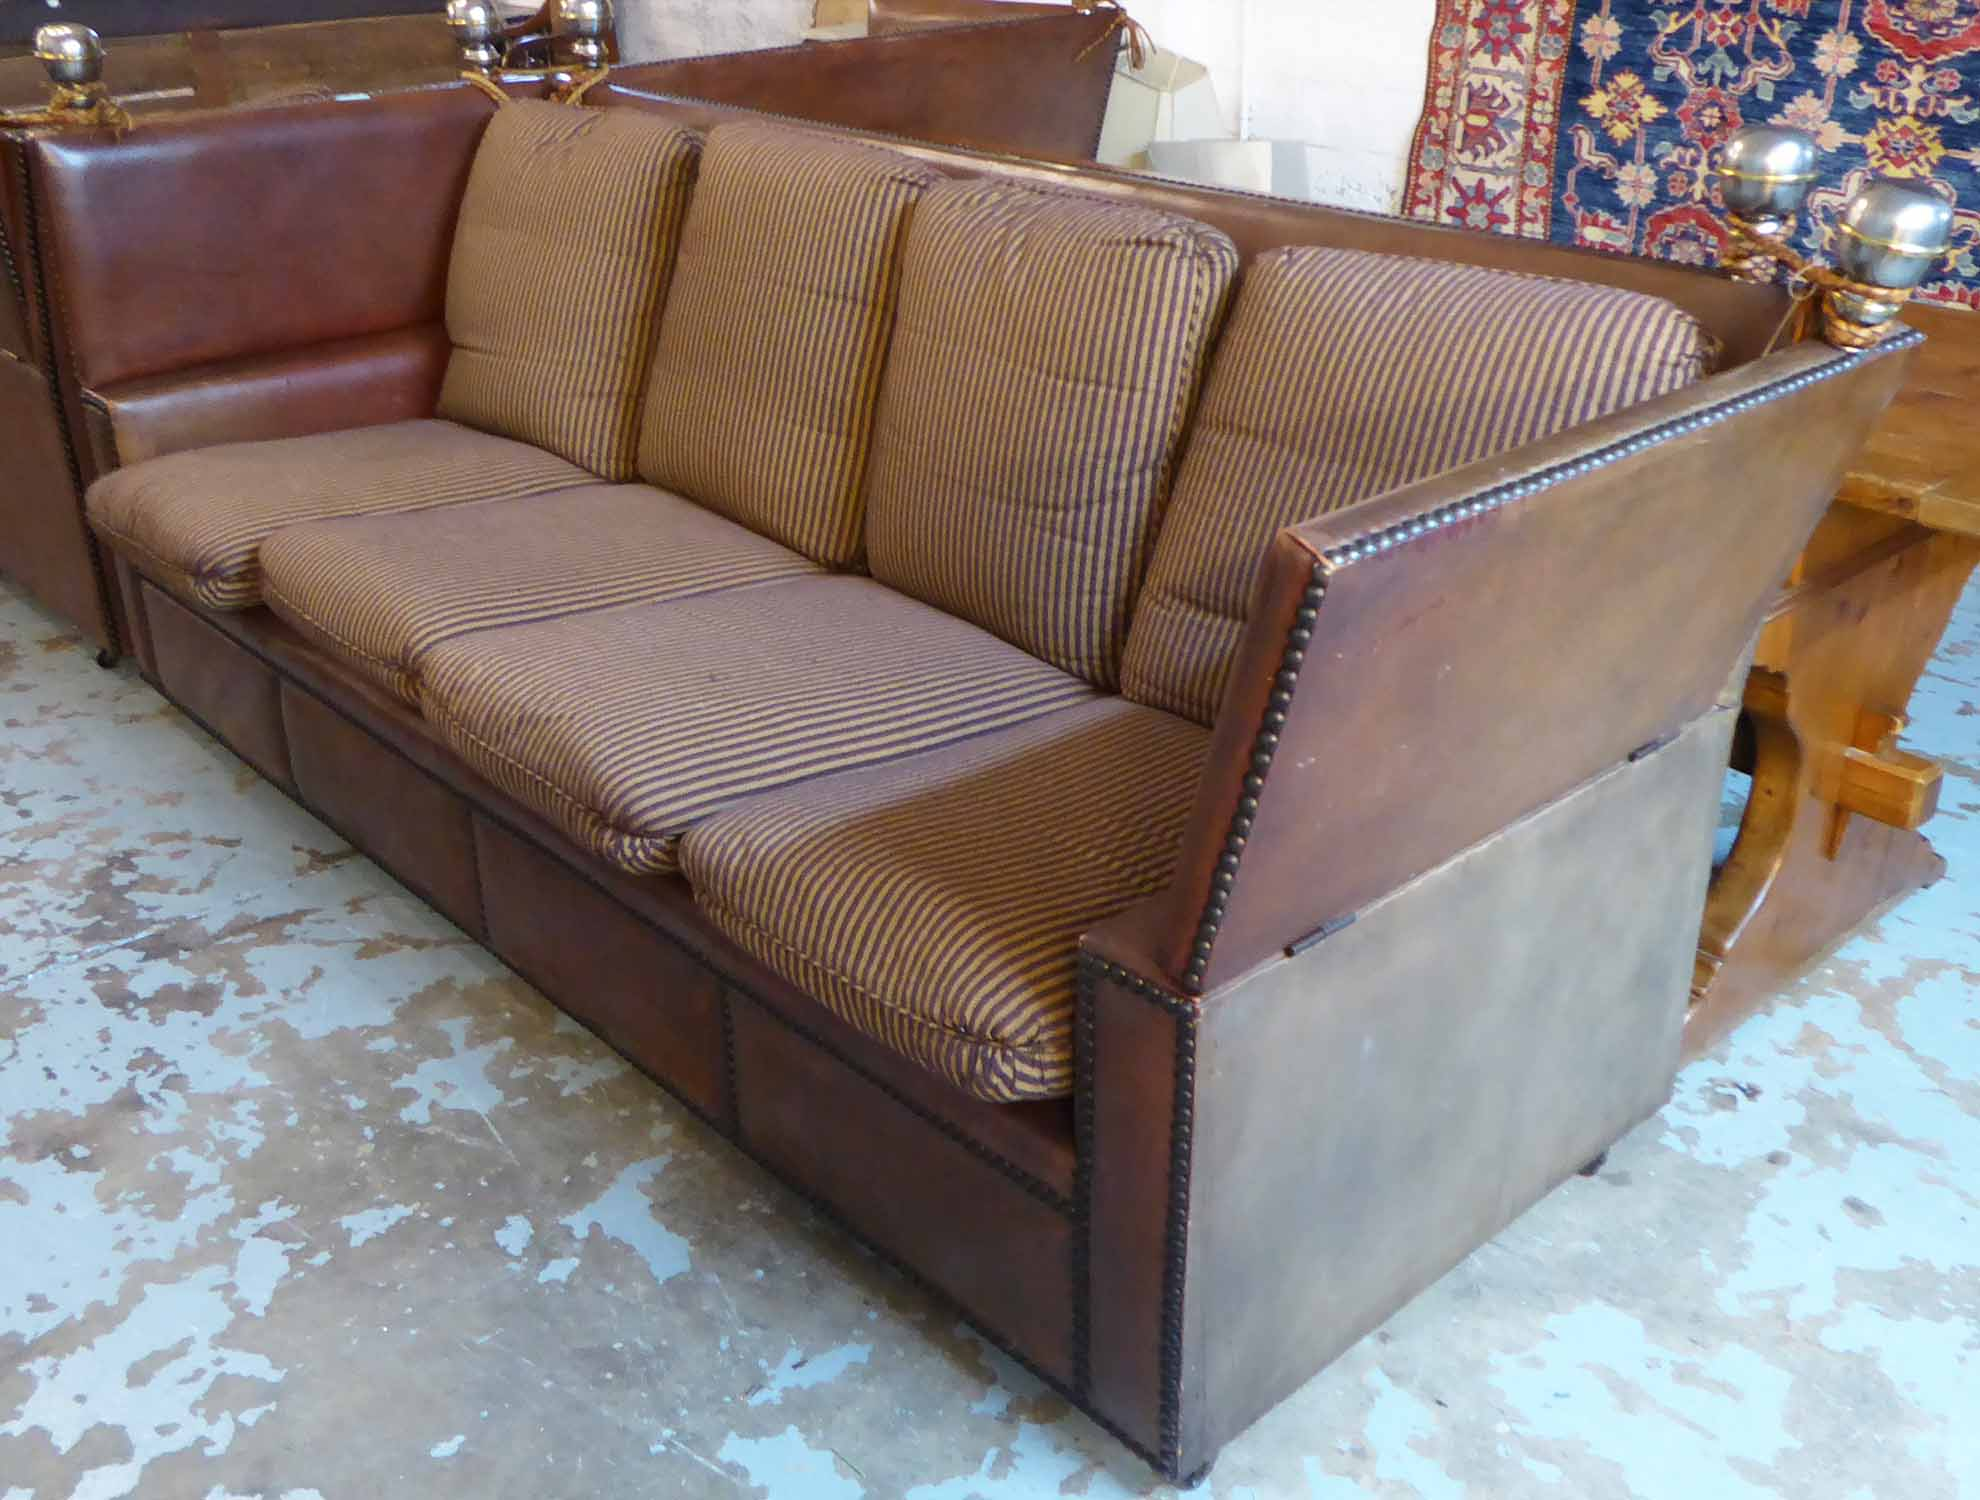 Lot 20 - KNOLE SOFA, of substantial proportions, brown leather with studded detail and striped cushions,